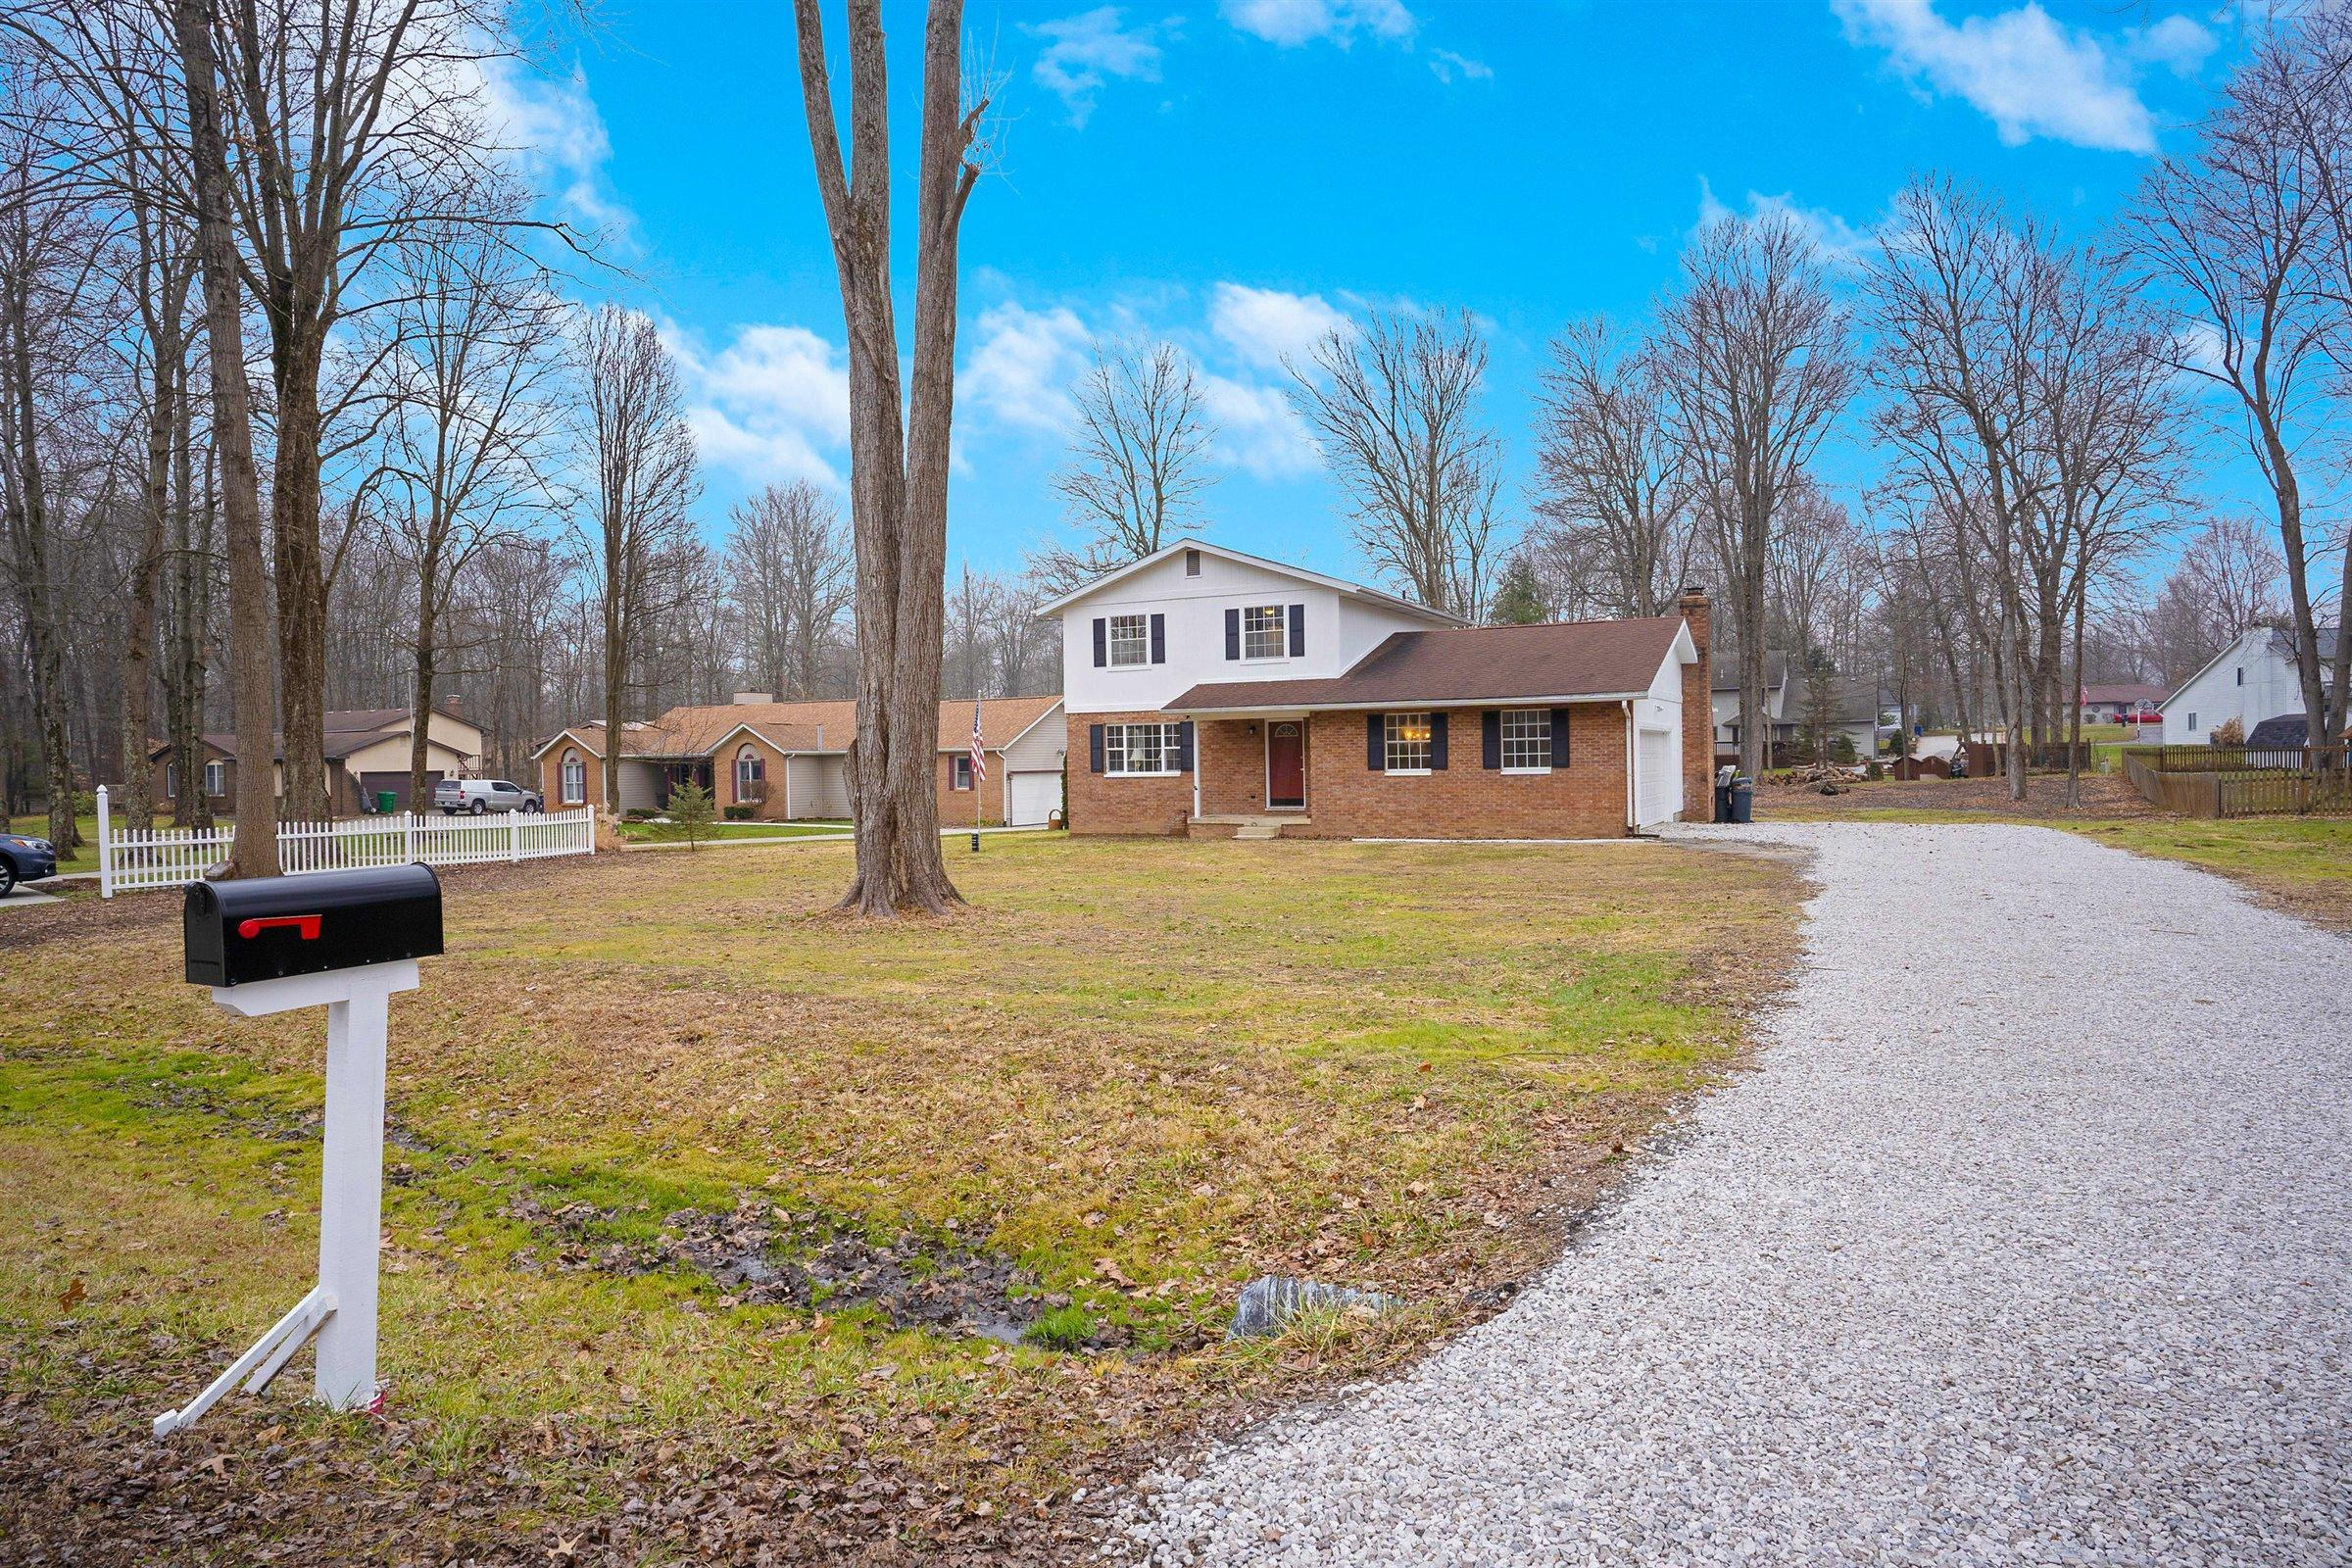 275 Forward Pass Road, Pataskala, Ohio 43062, 3 Bedrooms Bedrooms, ,3 BathroomsBathrooms,Residential,For Sale,Forward Pass,221000931